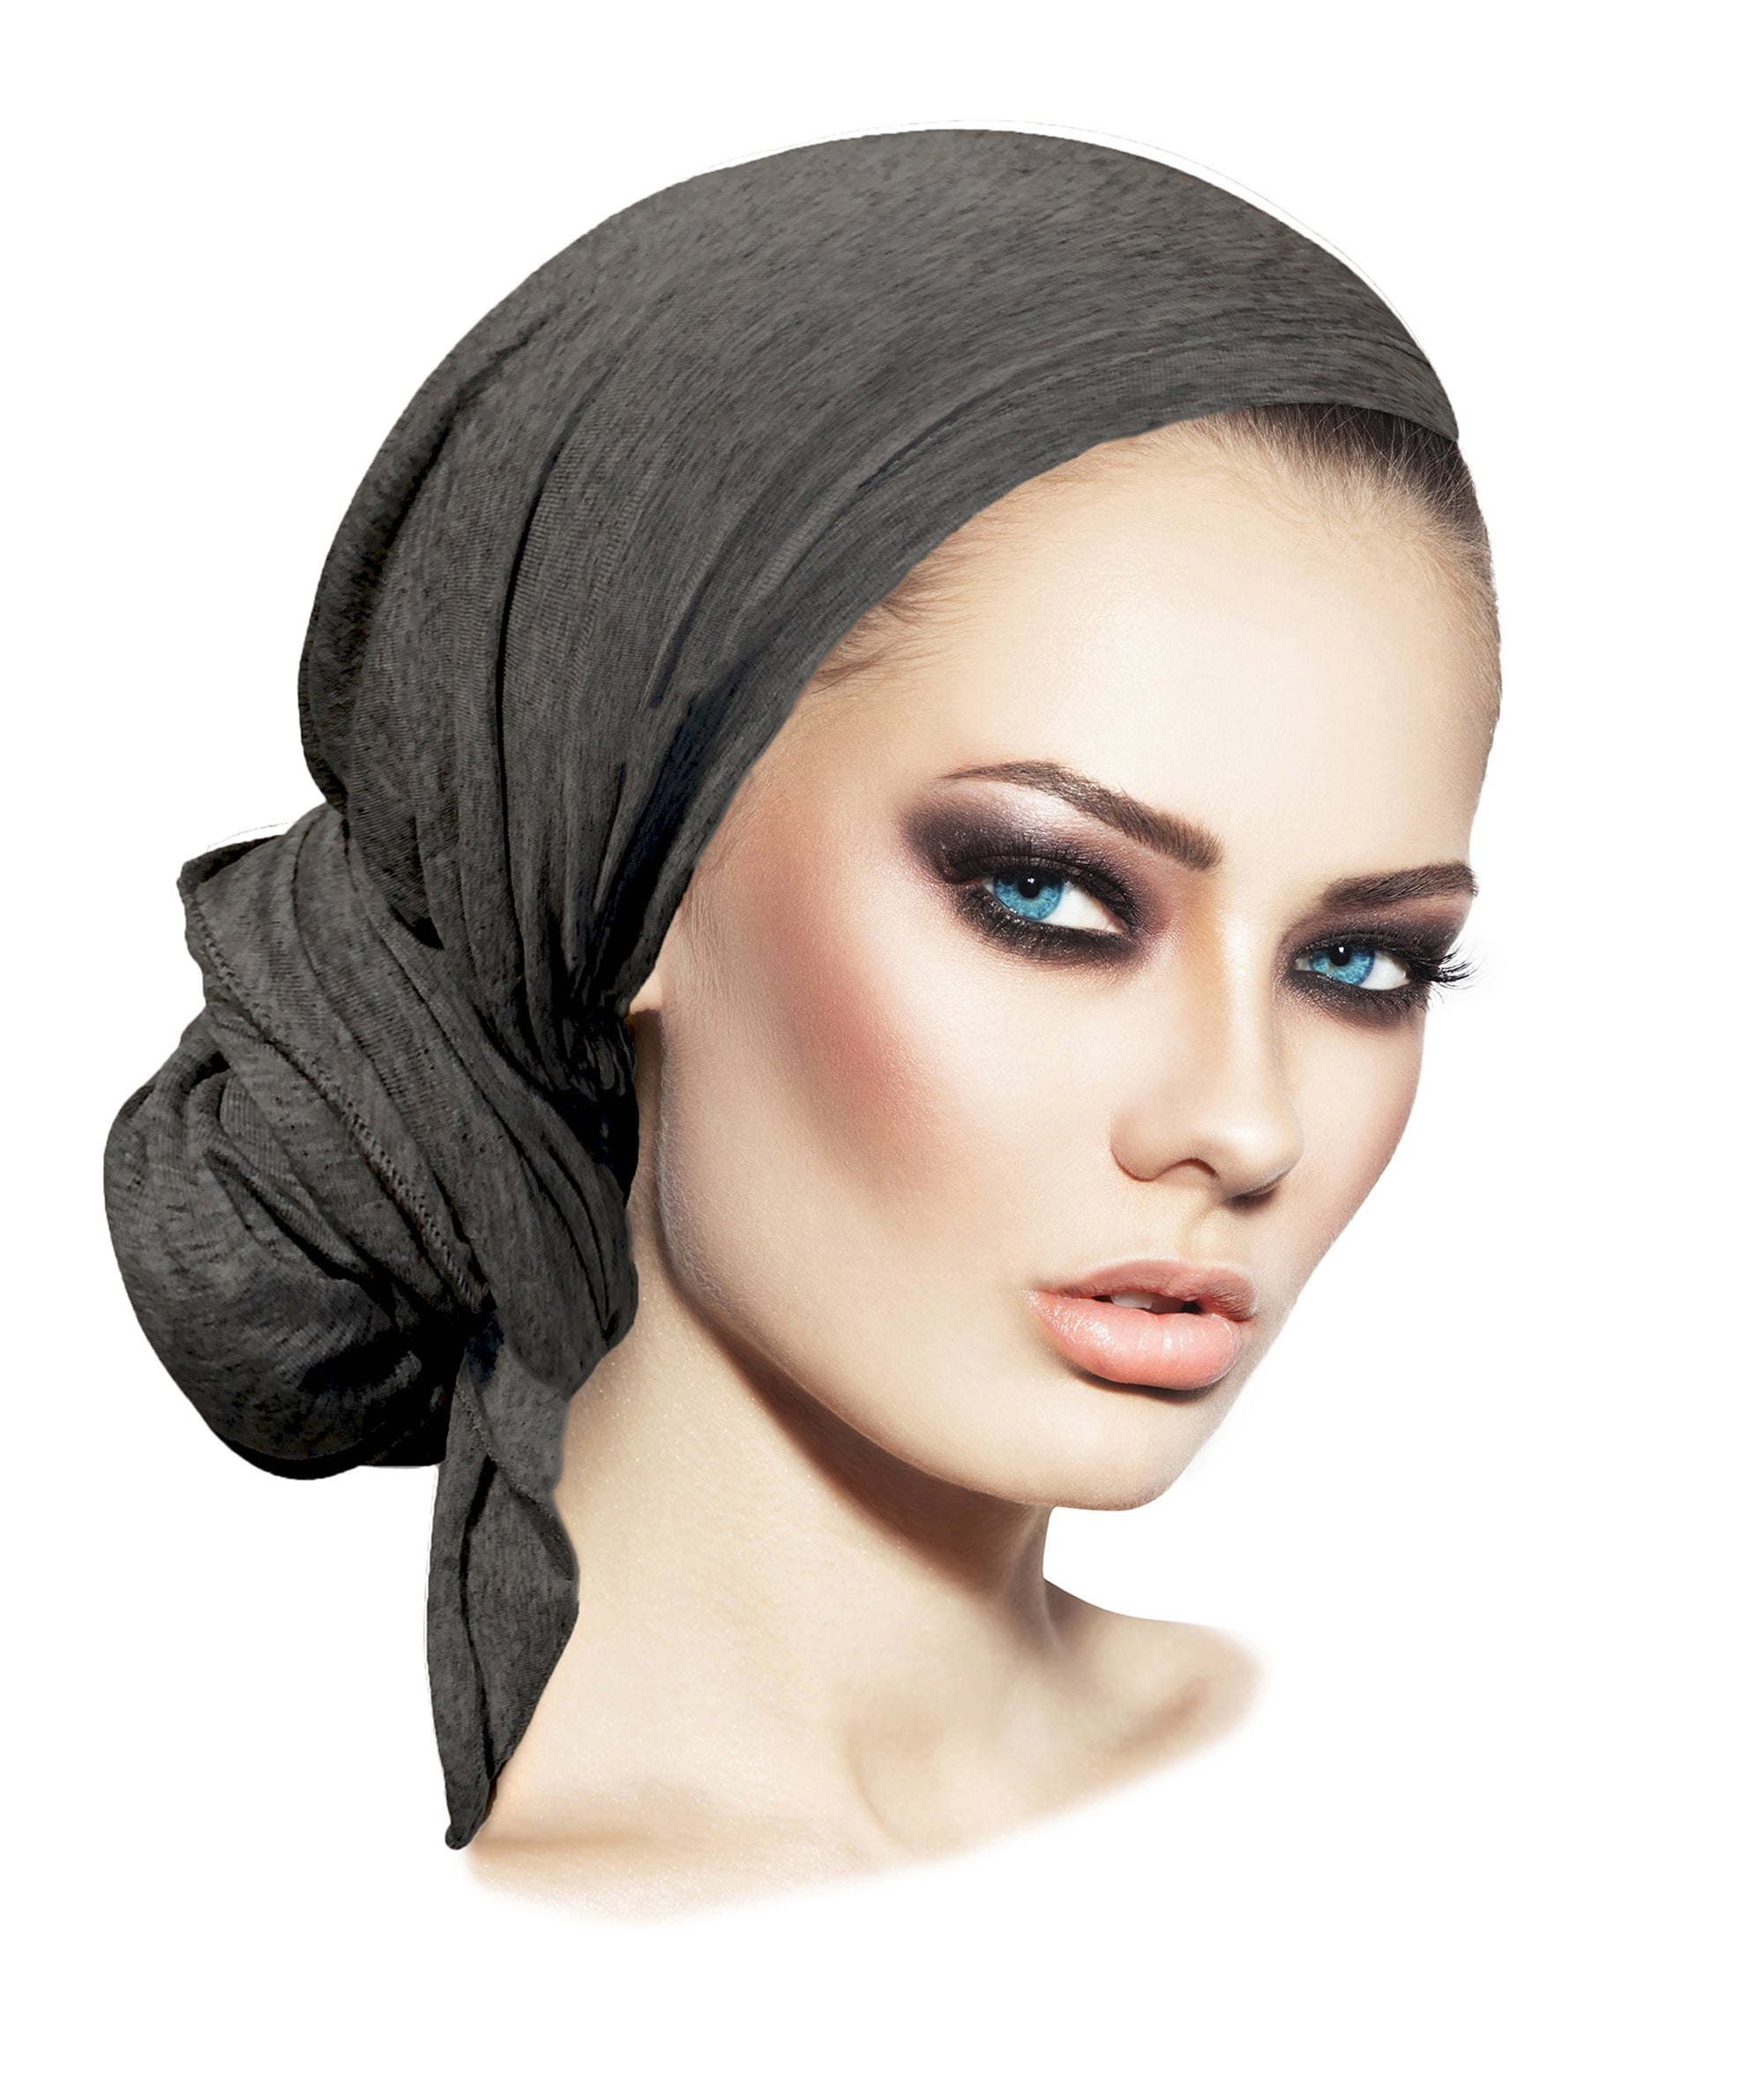 Long charcoal gray pre tied headscarf